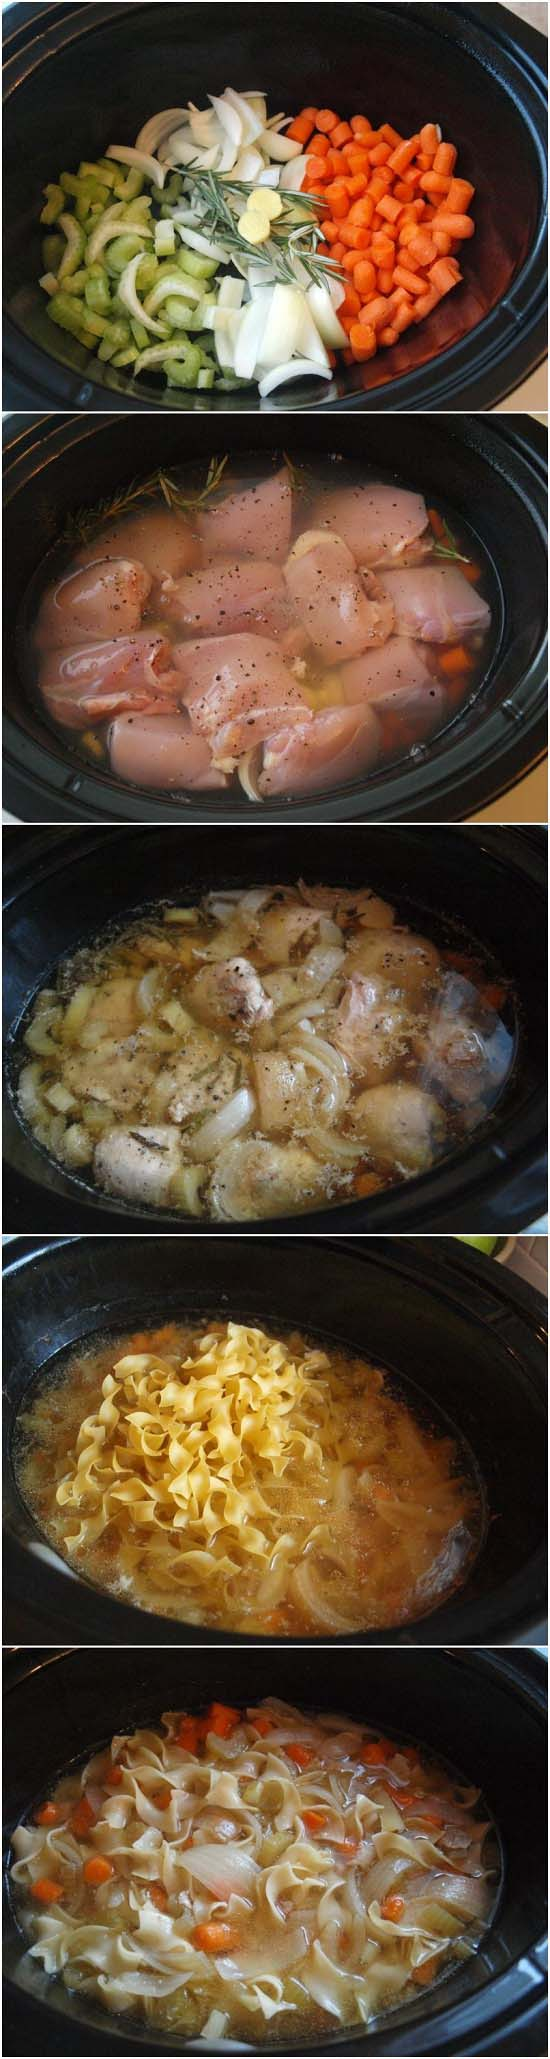 Easy Crock Pot Recipes You Have To Try Today   Best Easy Slow Cooker Recipe Ideas for the Crockpot Include beef stew, chili, chicken dinner dishes, soup and more   Crockpot Chicken Noodle Soup #crockpot #crockpotrecipes #easyreipes/